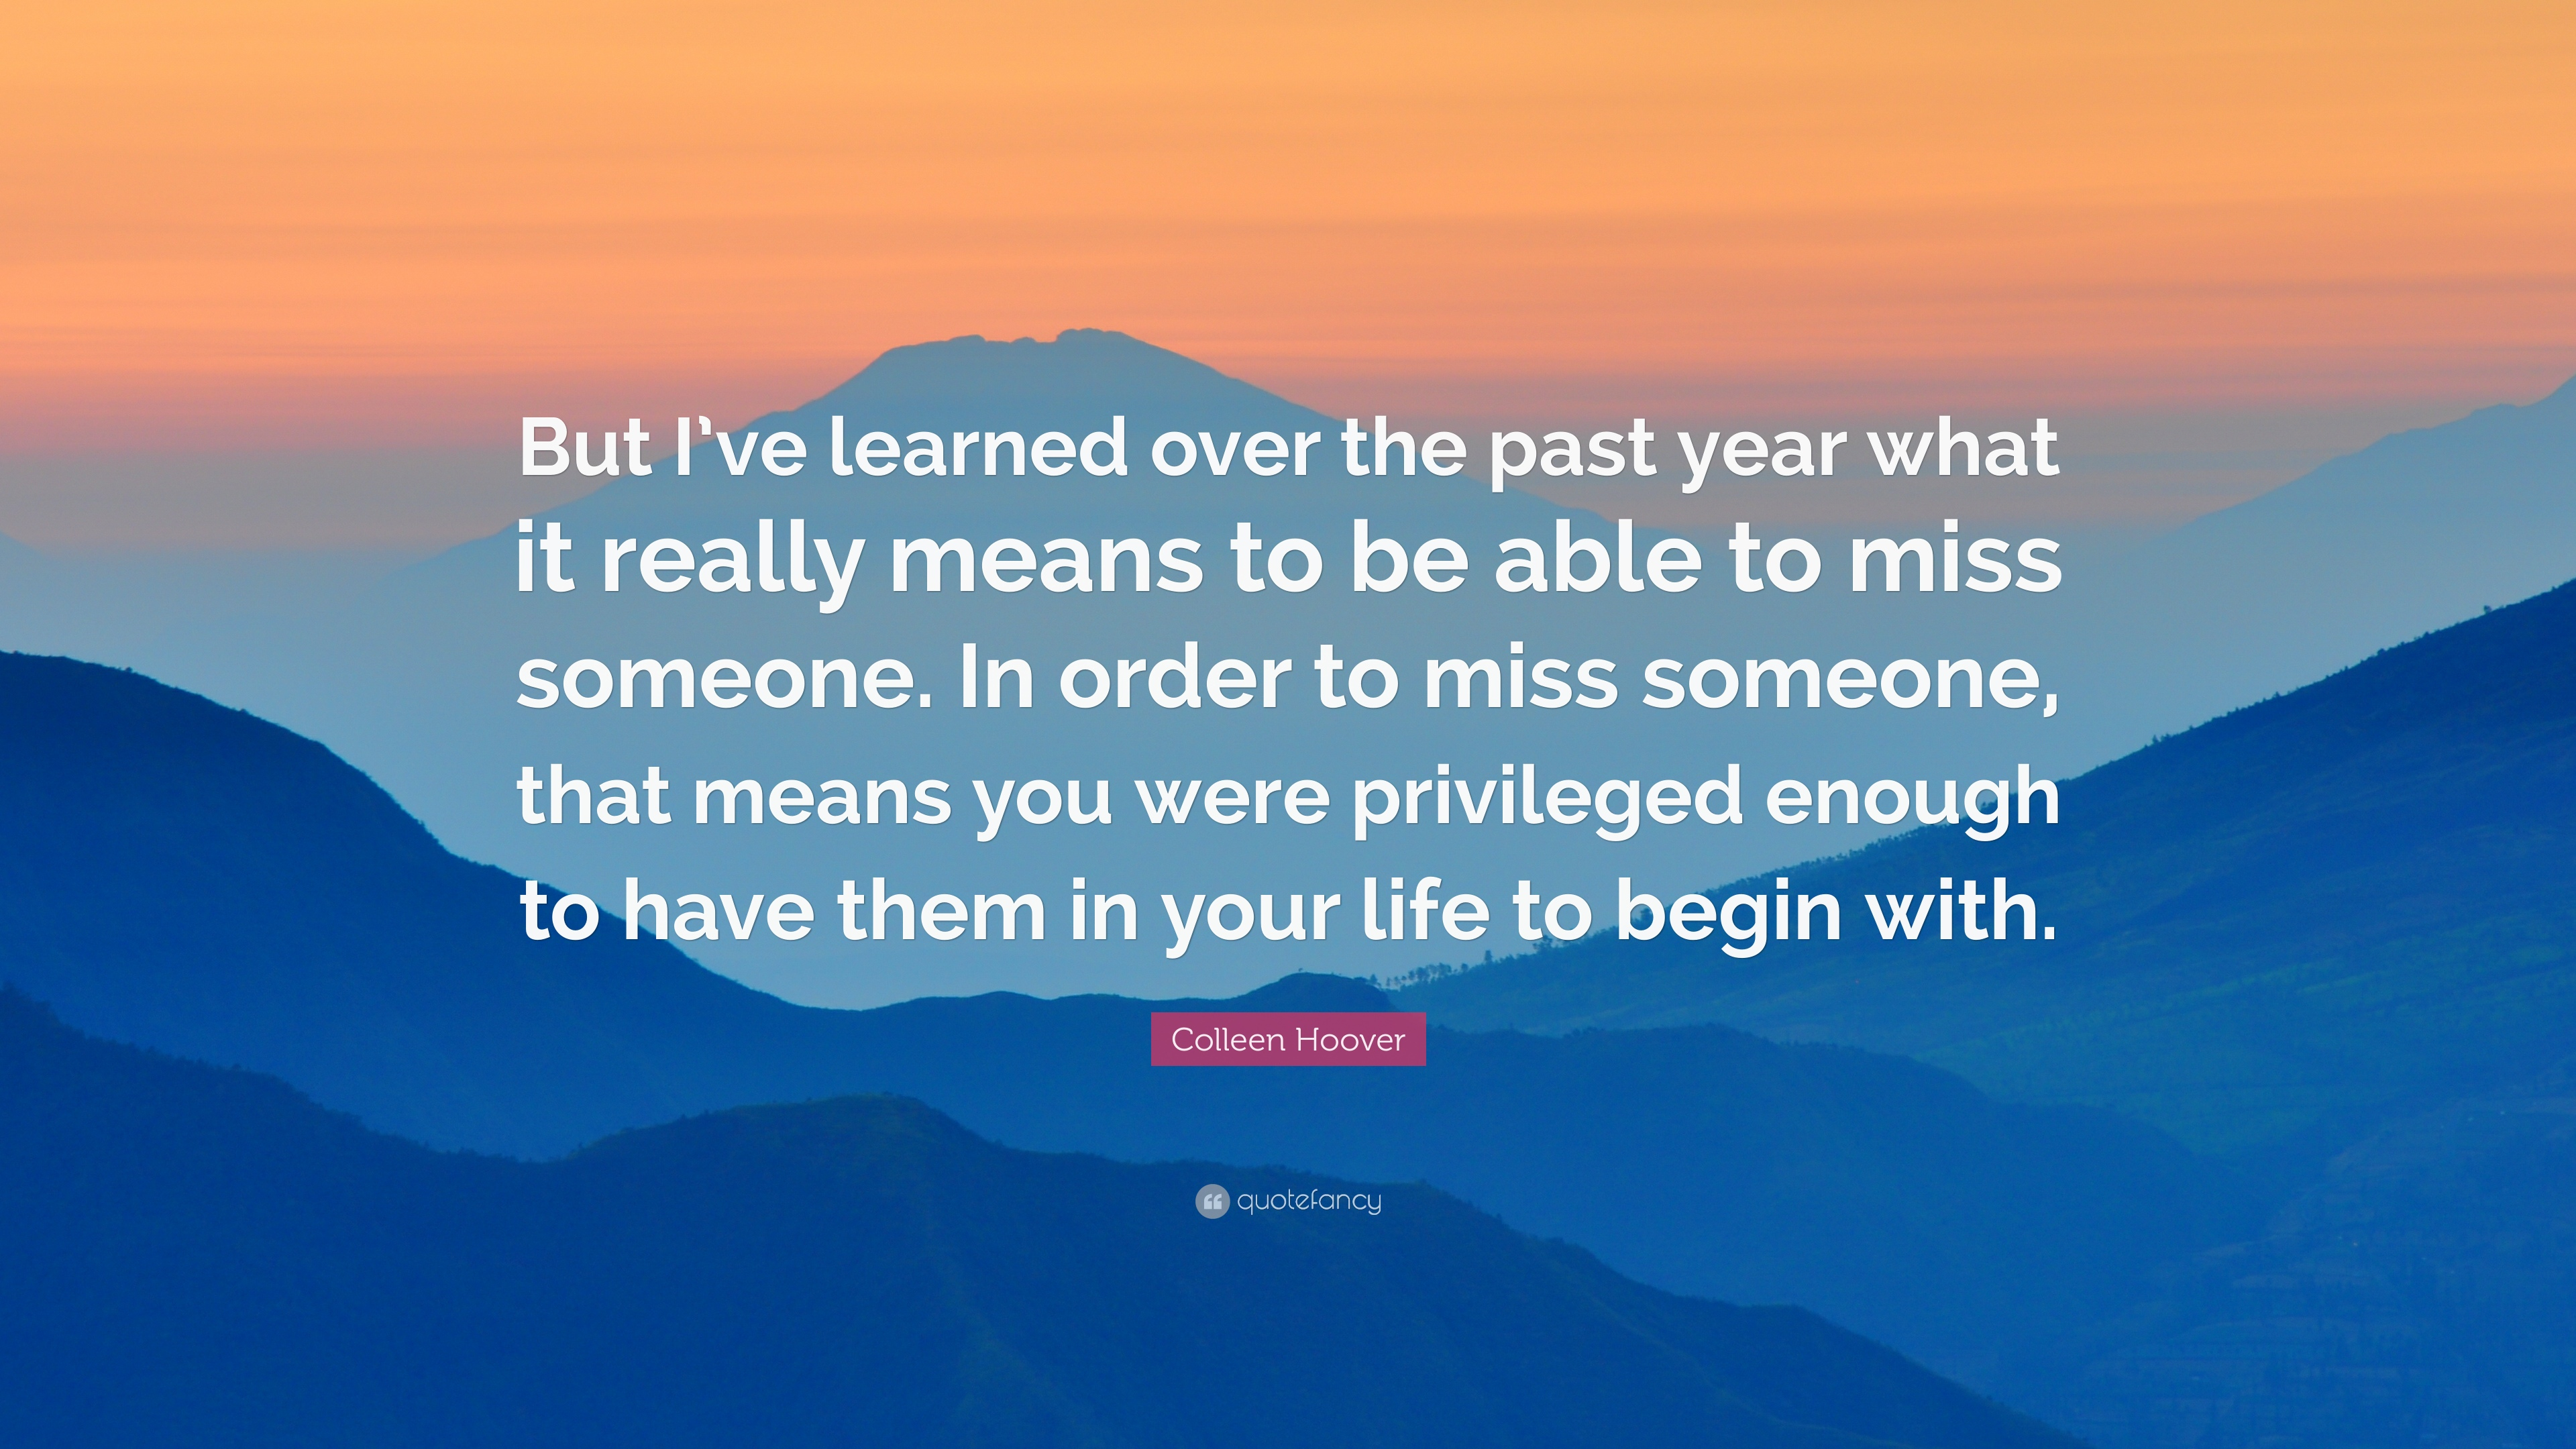 What does it mean to miss someone